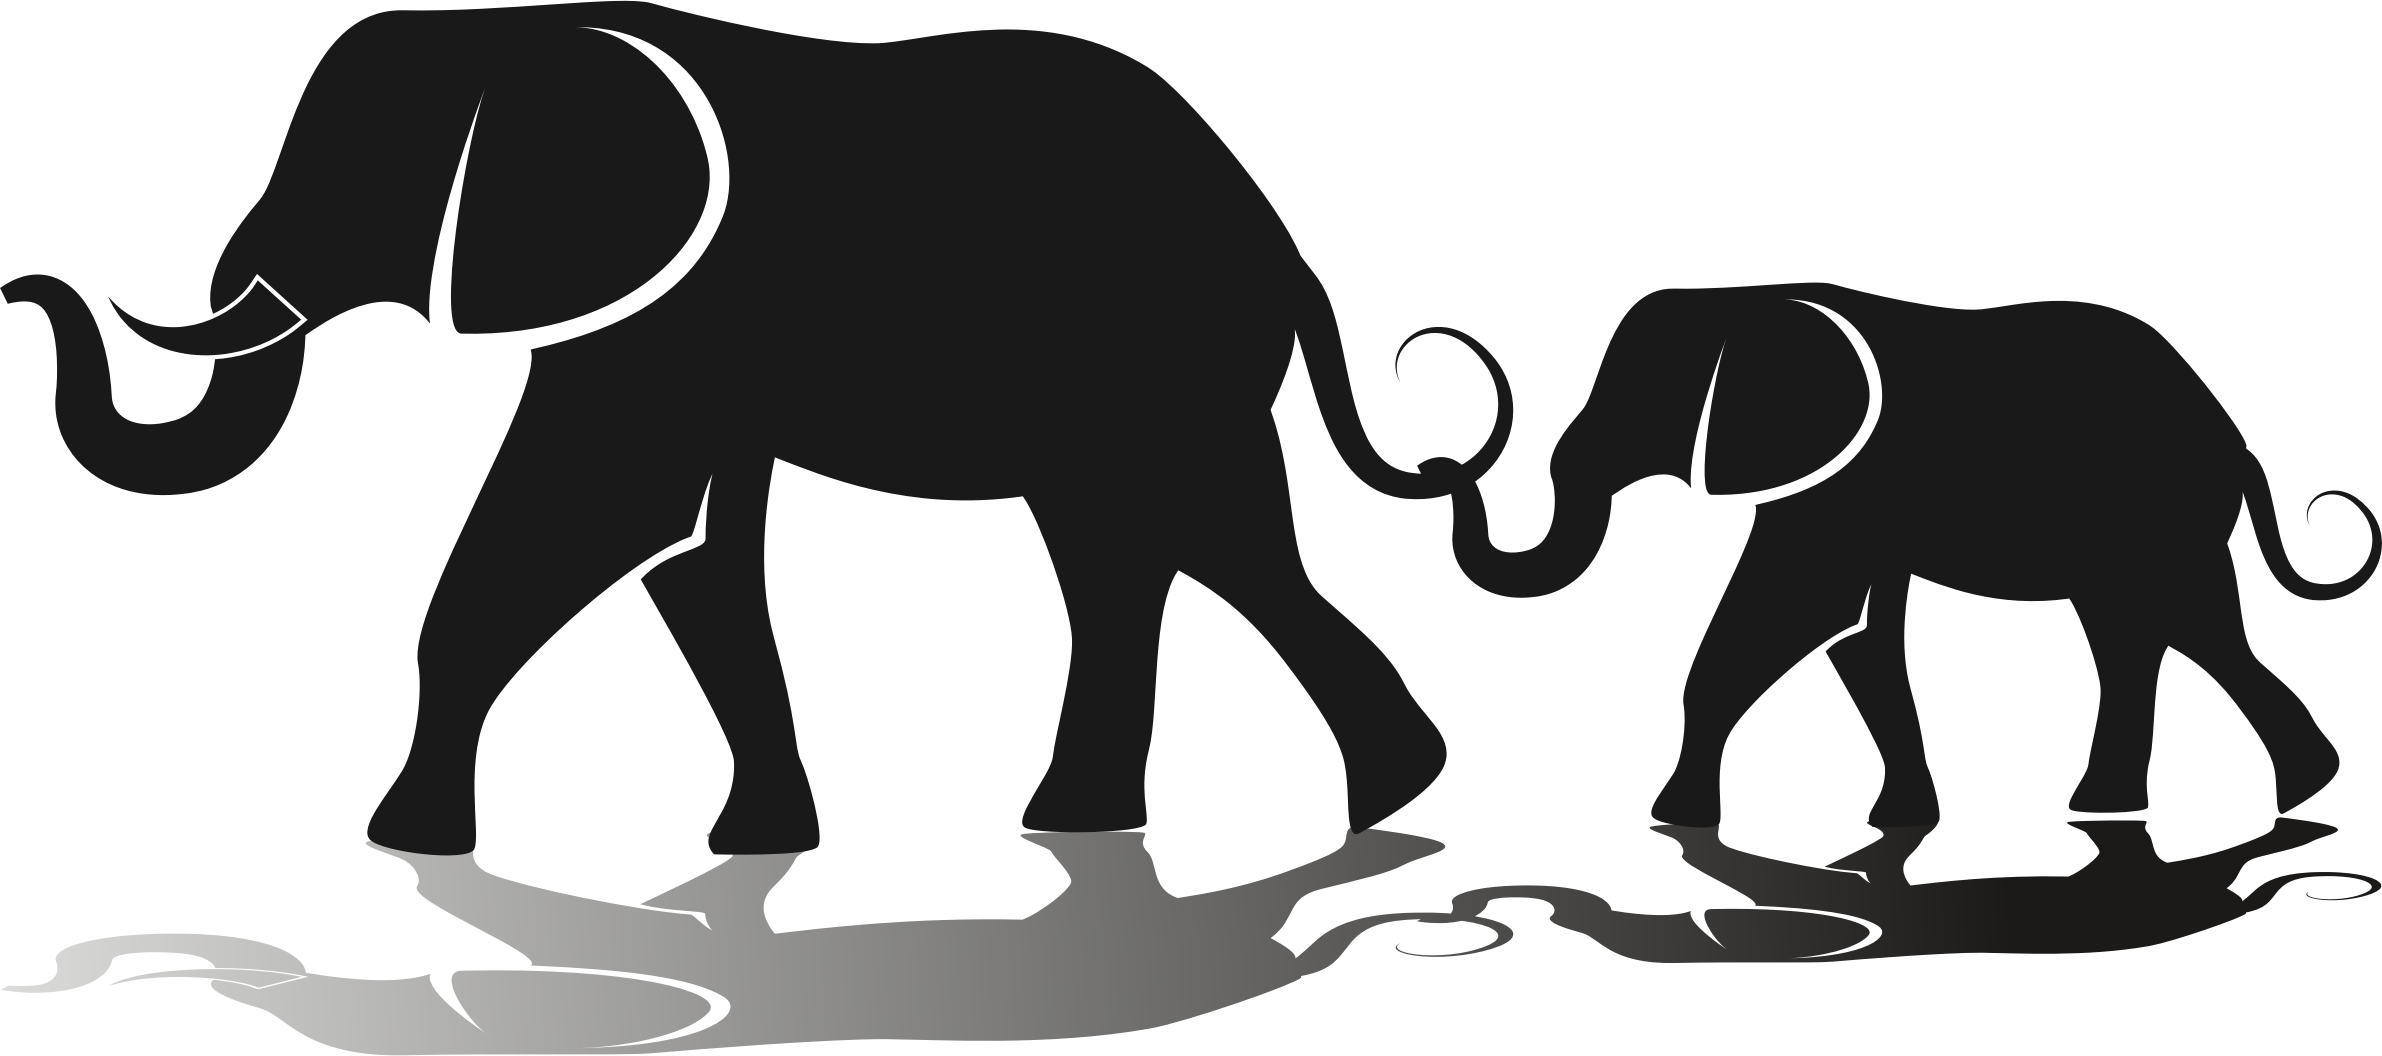 Elephant clipart silhouette clipart images gallery for free download.